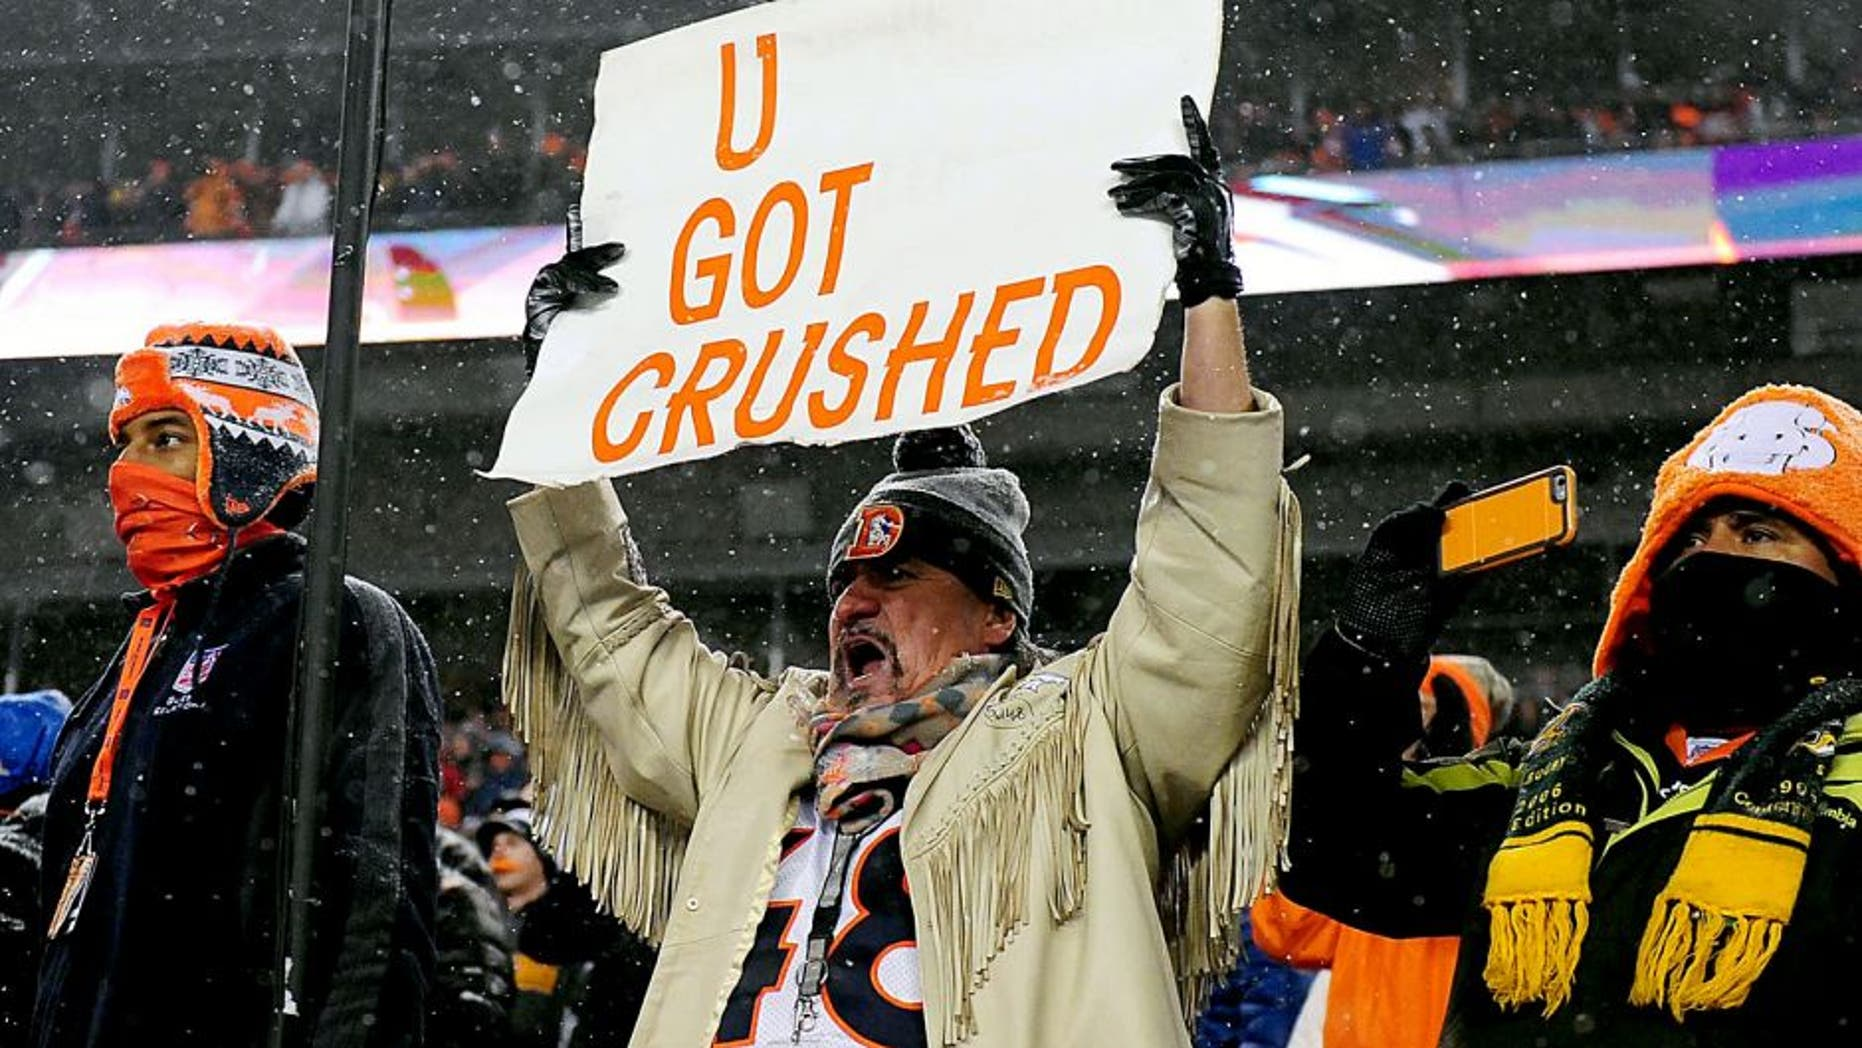 Nov 29, 2015; Denver, CO, USA; Denver Broncos fan holds a sign towards the New England Patriots bench during a overtime period at Sports Authority Field at Mile High. The Broncos defeated the Patriots 30-24 in overtime. Mandatory Credit: Ron Chenoy-USA TODAY Sports